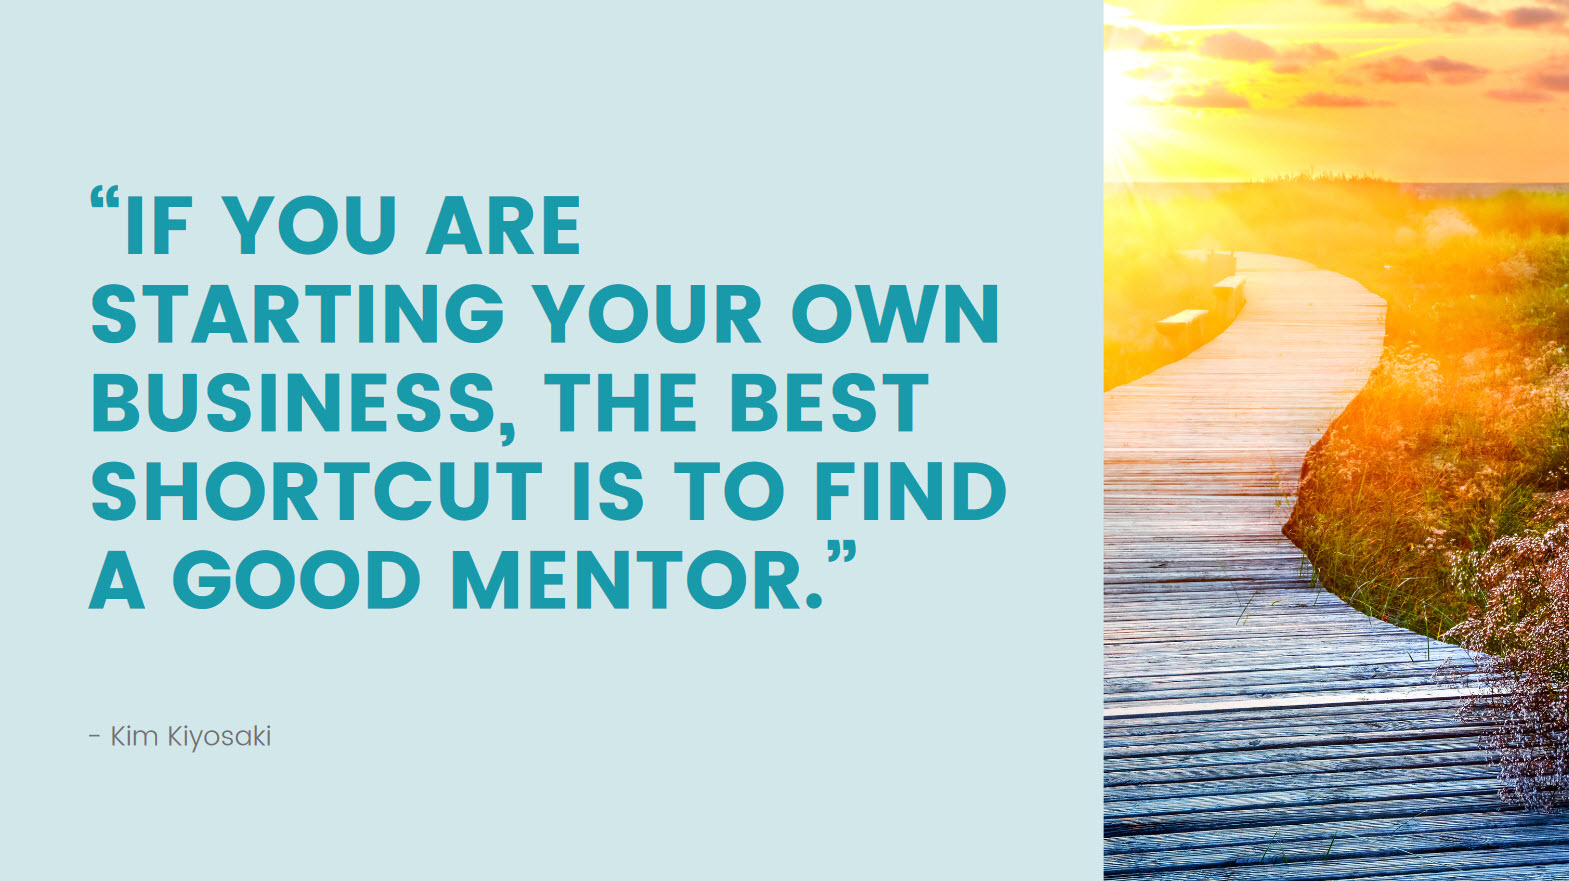 """Quote: """"If you are starting your own business, the best shortcut is to find a good mentor."""" - Kim Kiyosaki"""